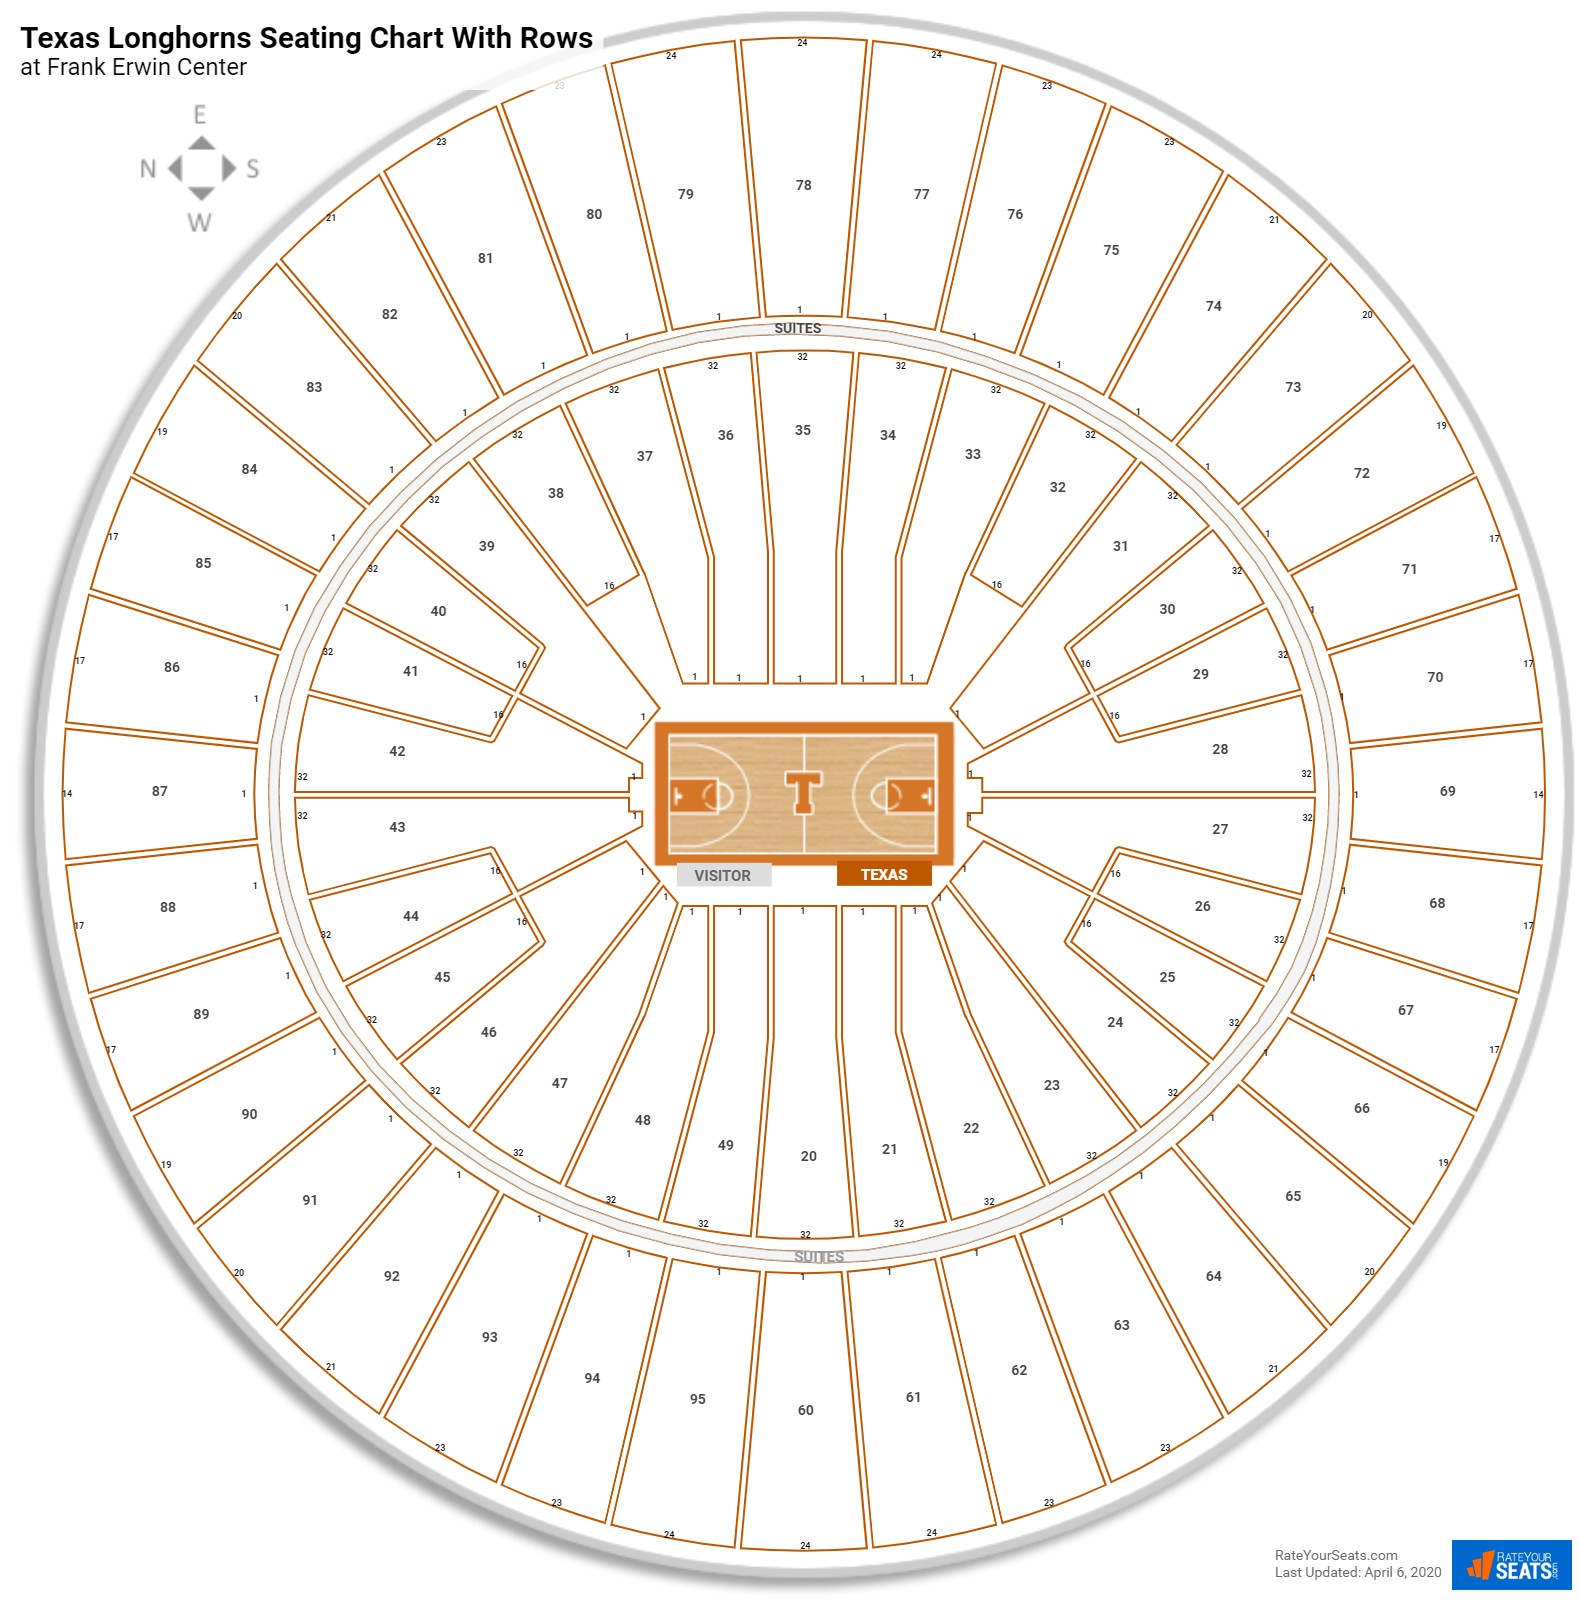 Frank Erwin Center Seating Charts For Texas Basketball Rateyourseats Com